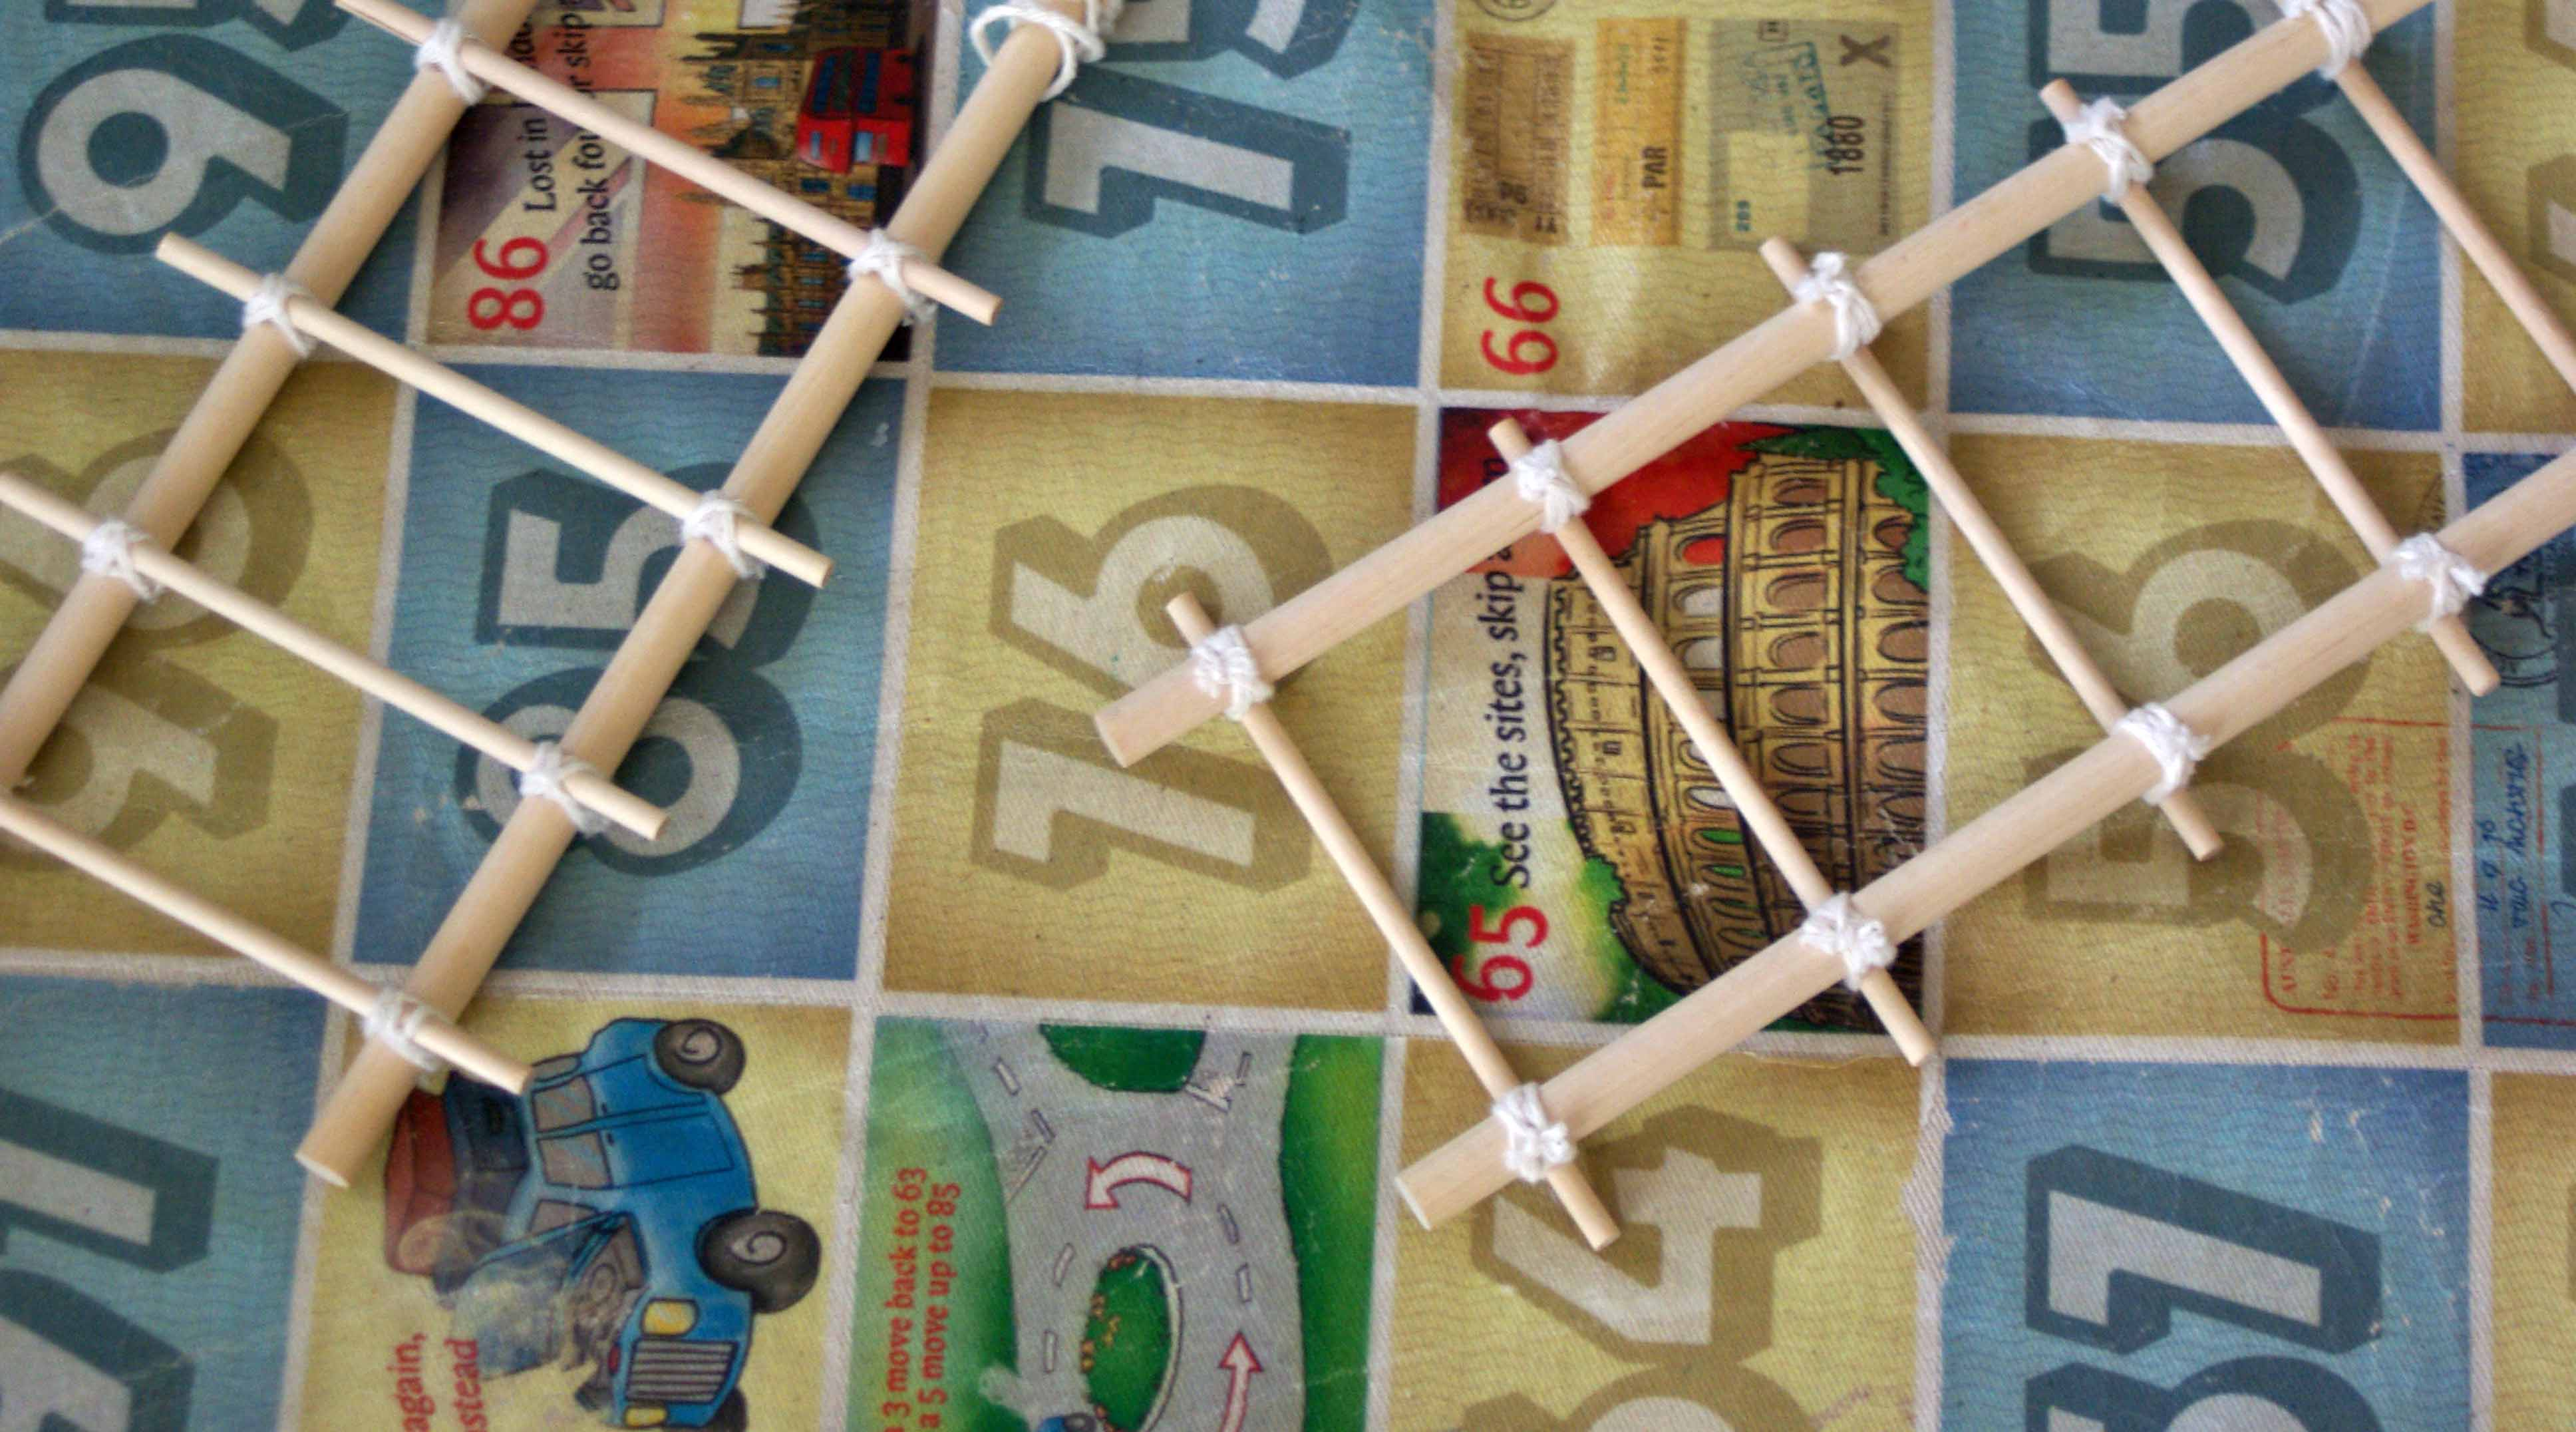 instructions on how to play snakes and ladders in afrikaans